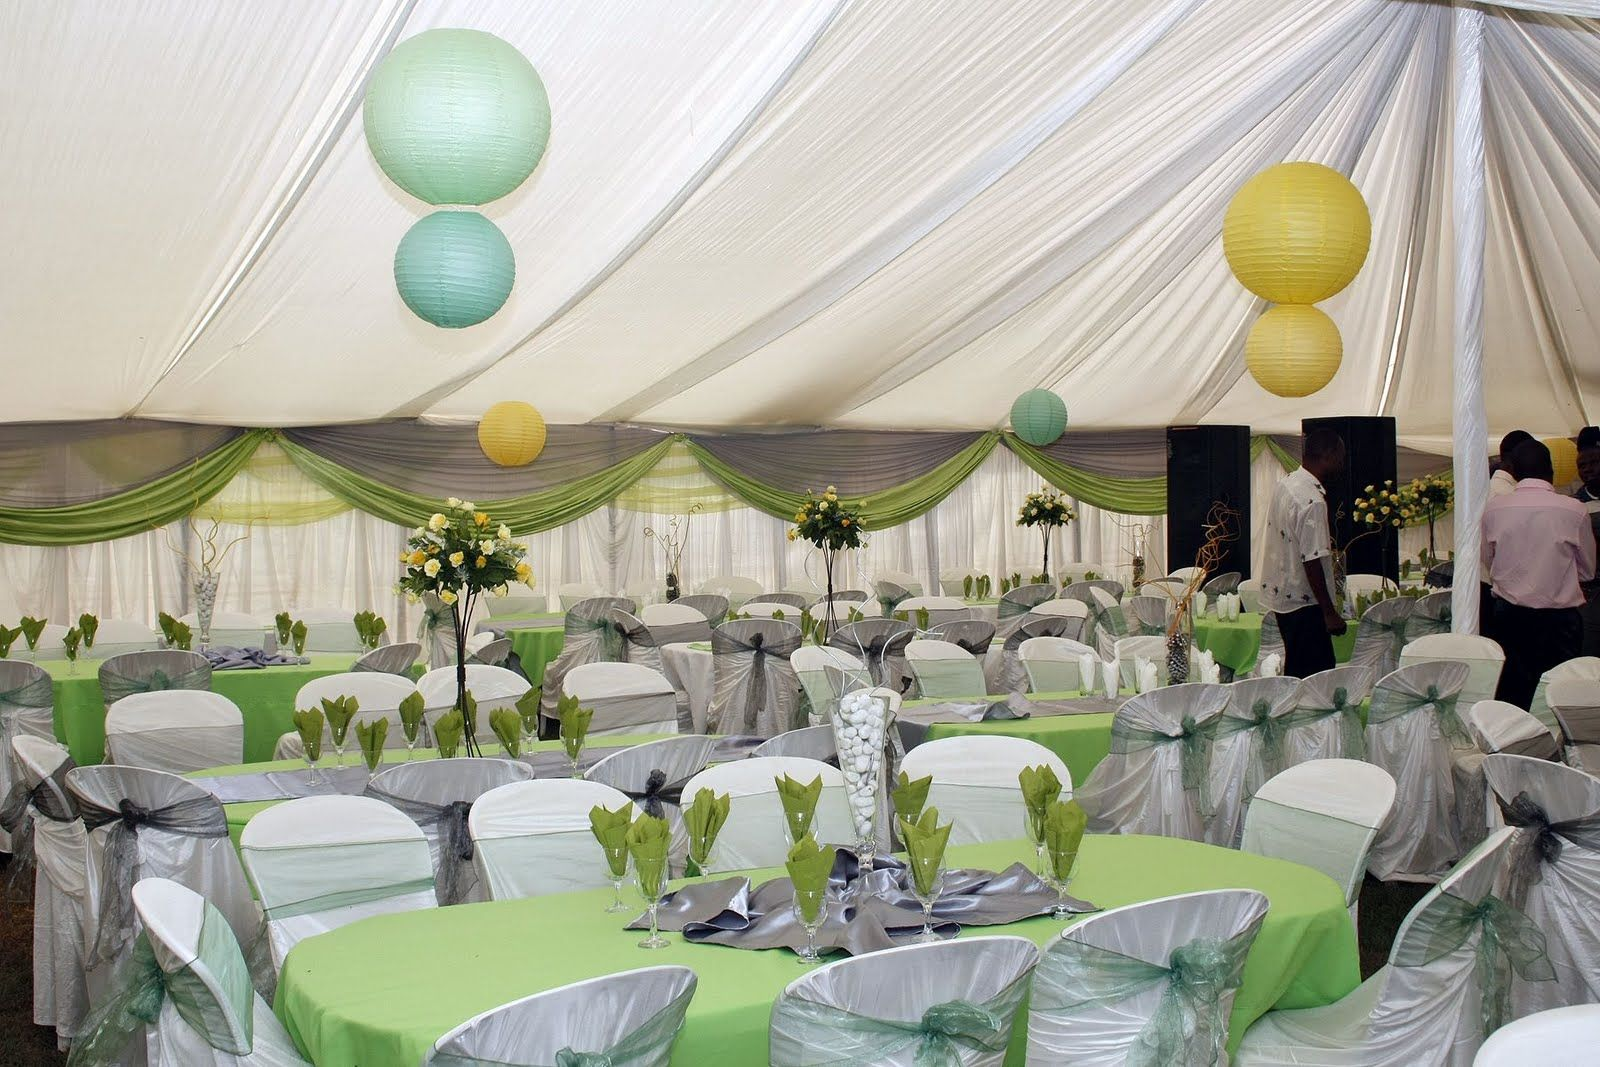 Garden wedding reception decoration ideas how to make for Simple wedding decorations for reception